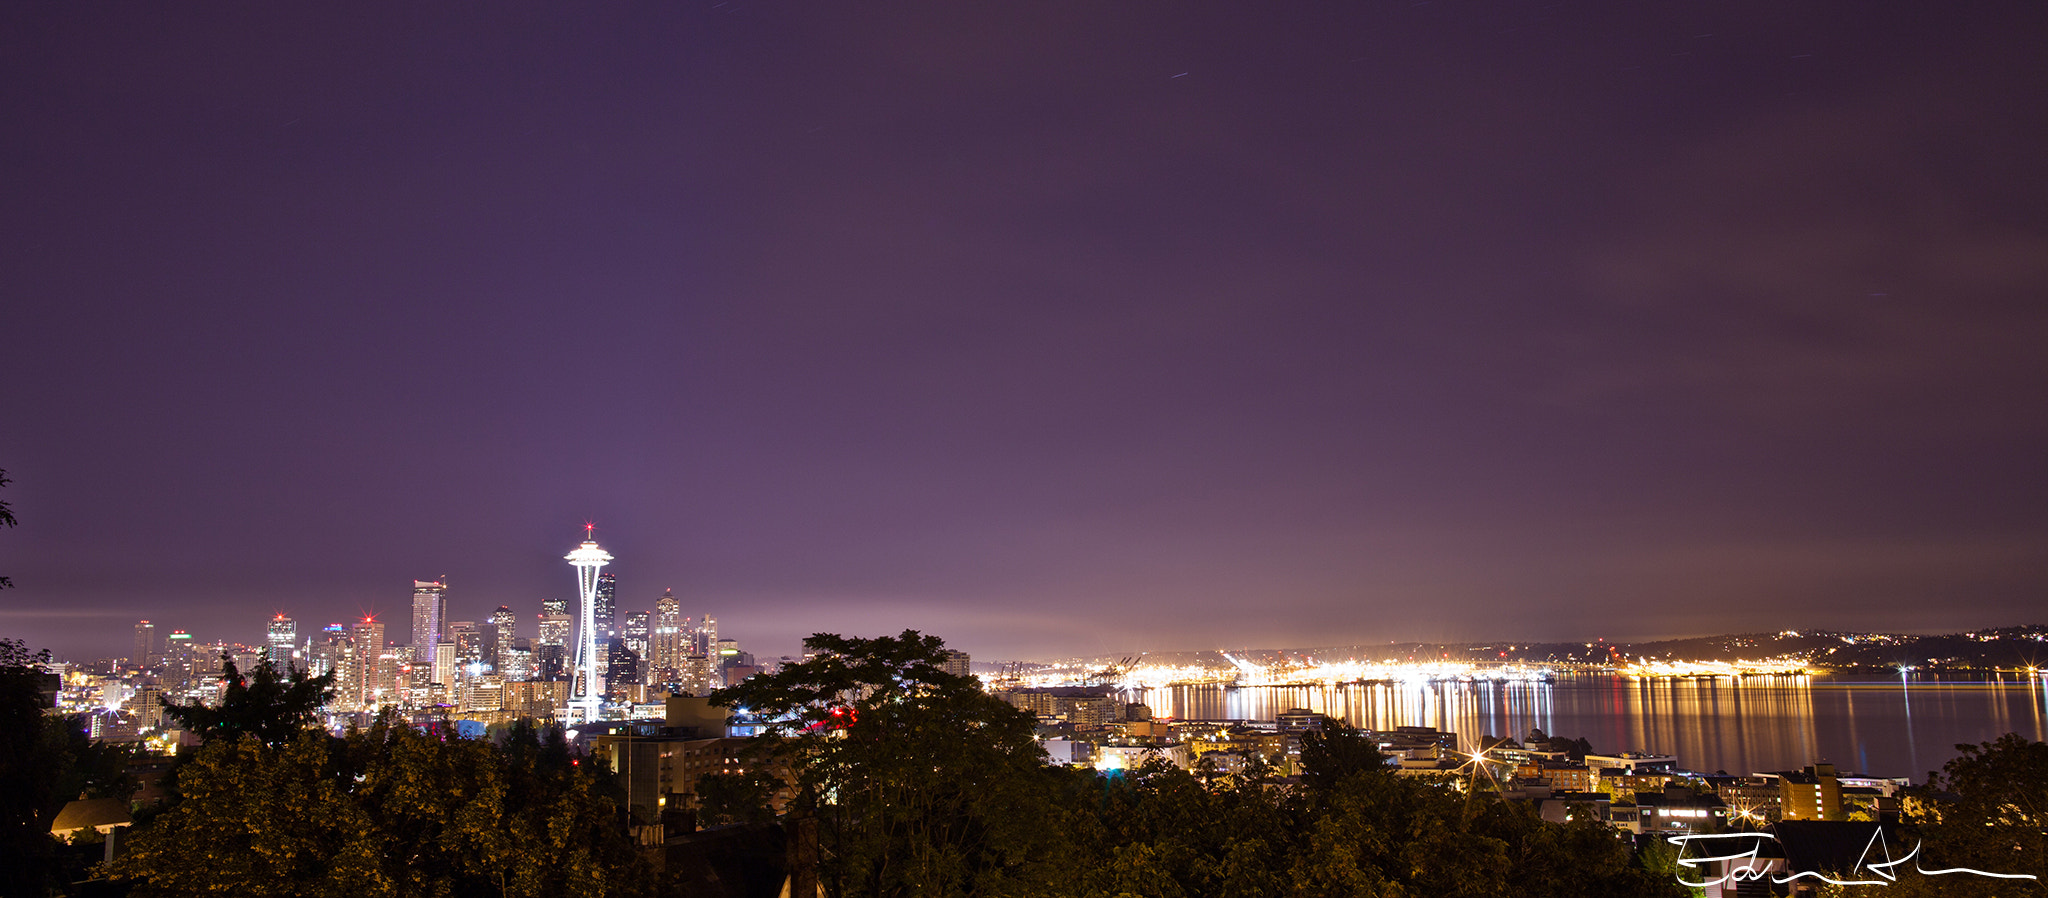 Photograph While the City Sleeps by Edwin Abedi on 500px